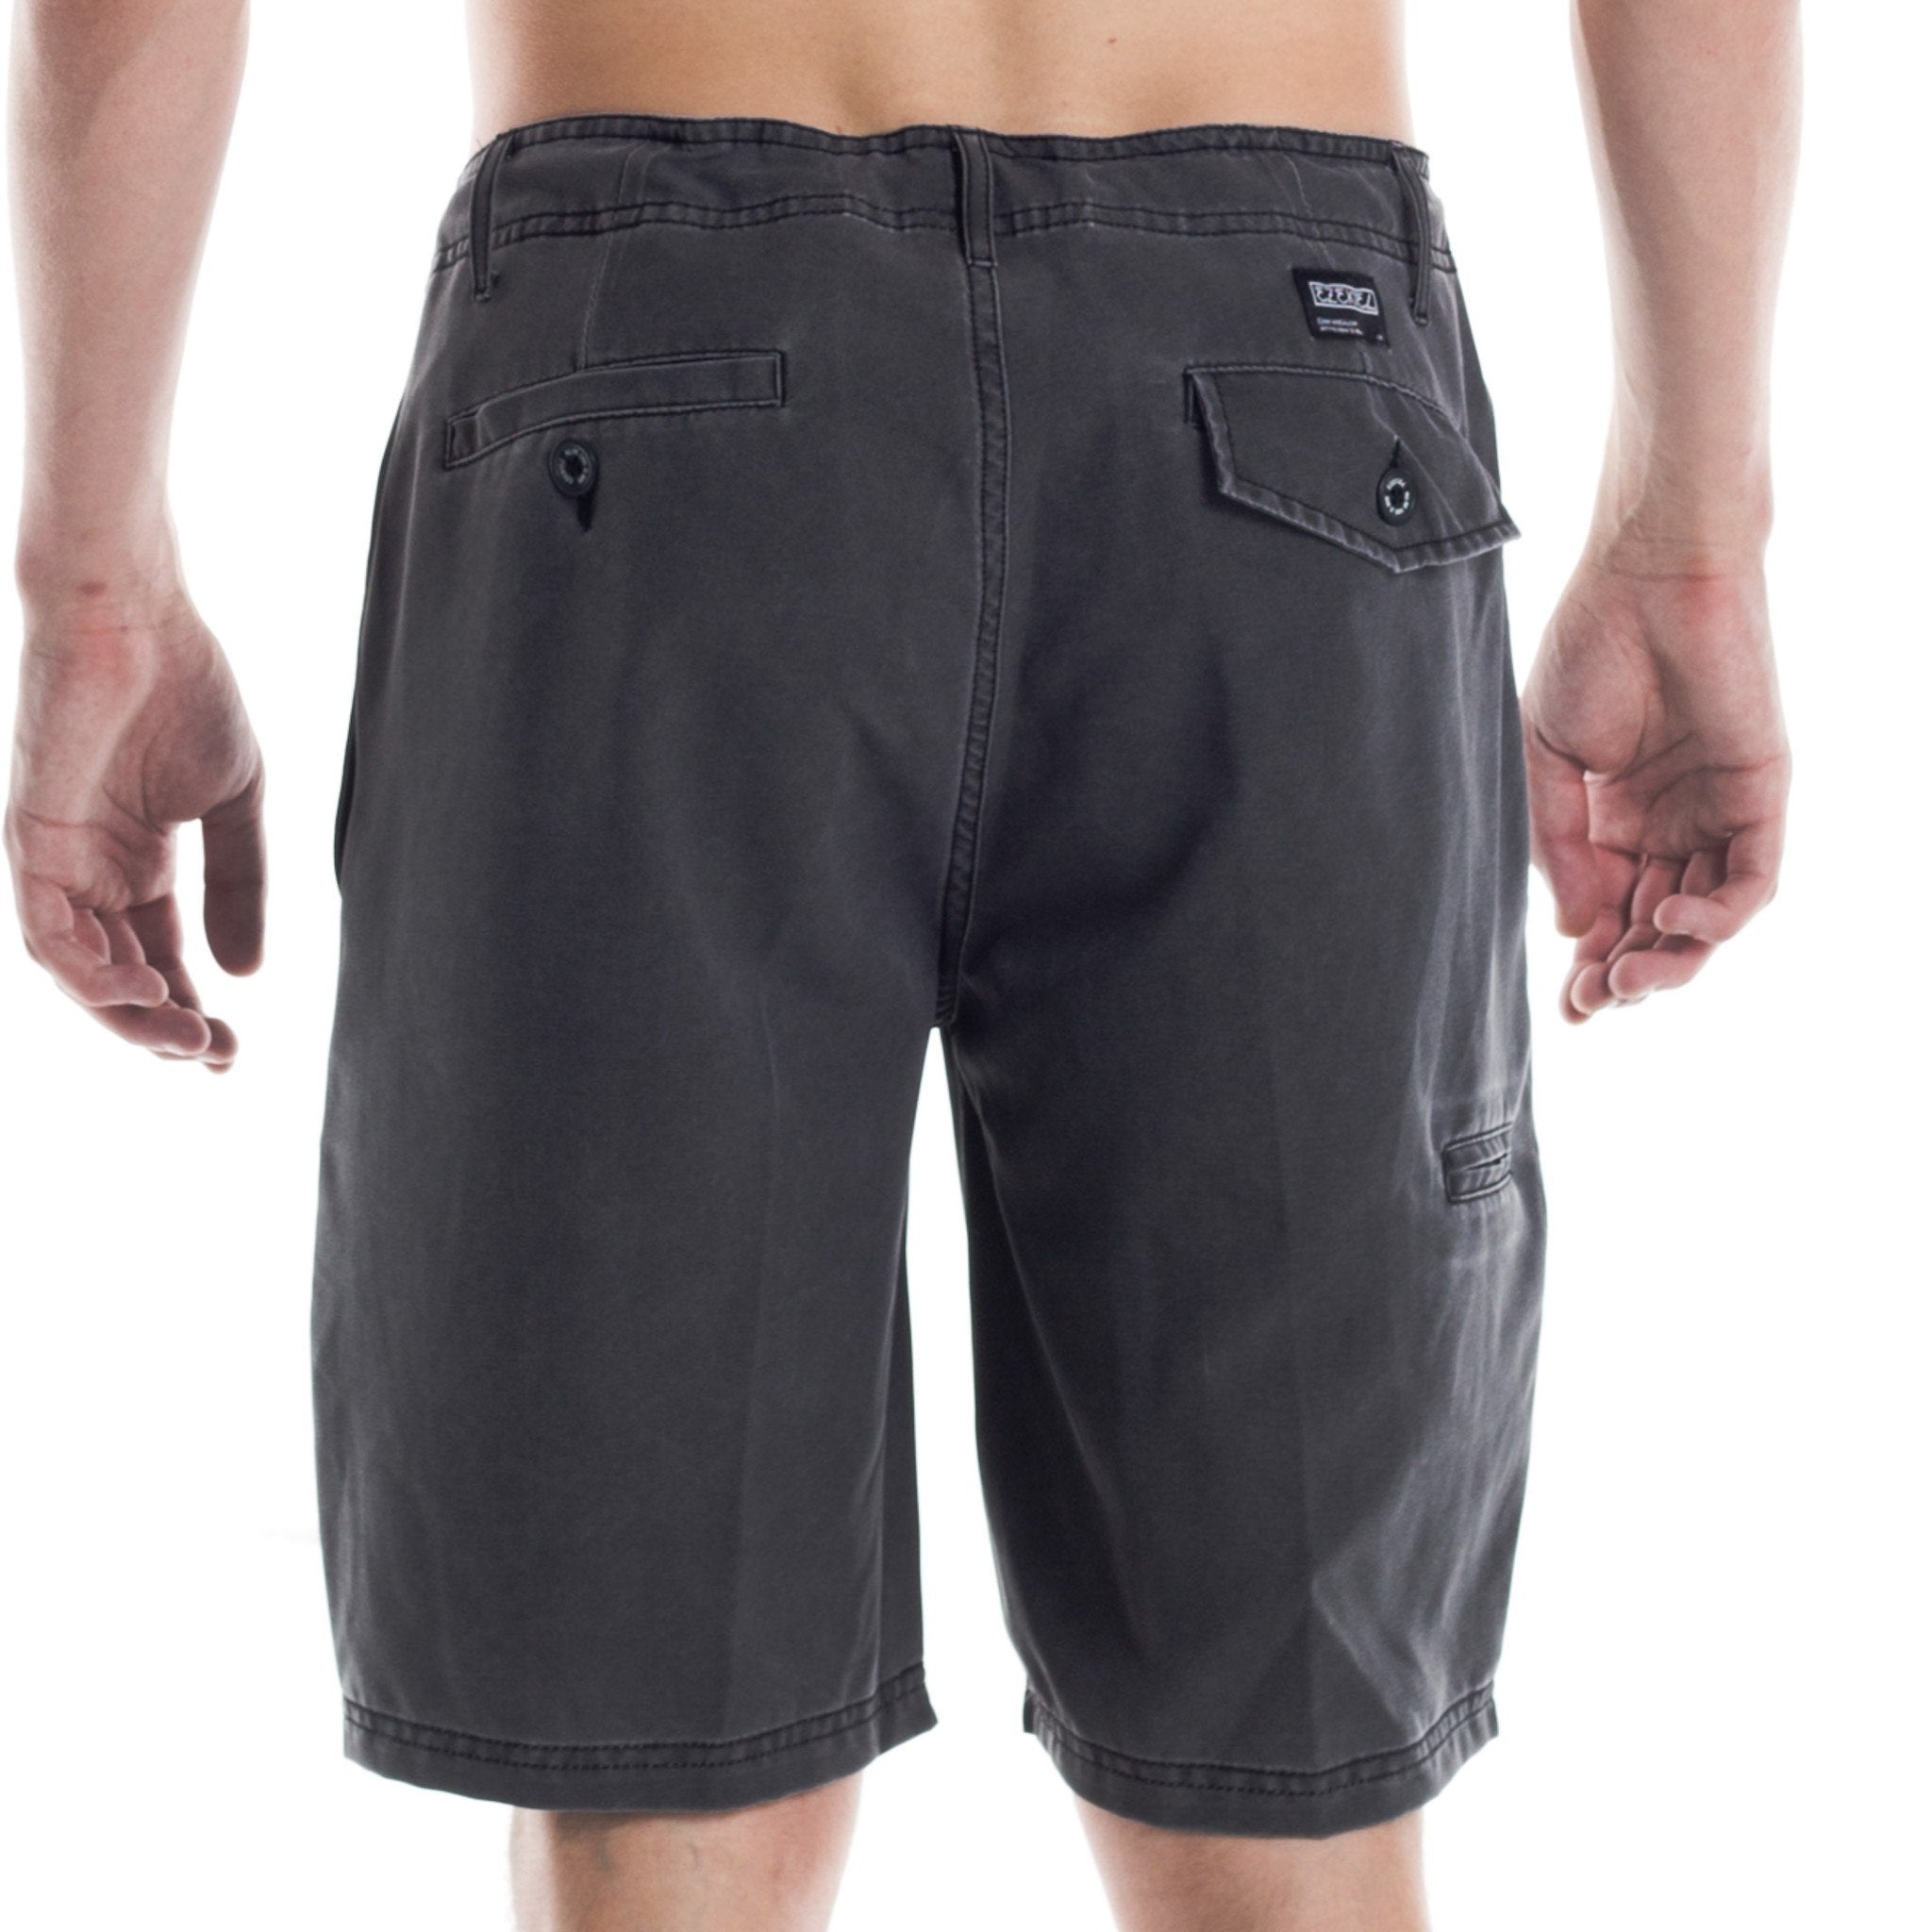 Dazed Versa Boardshort - Black